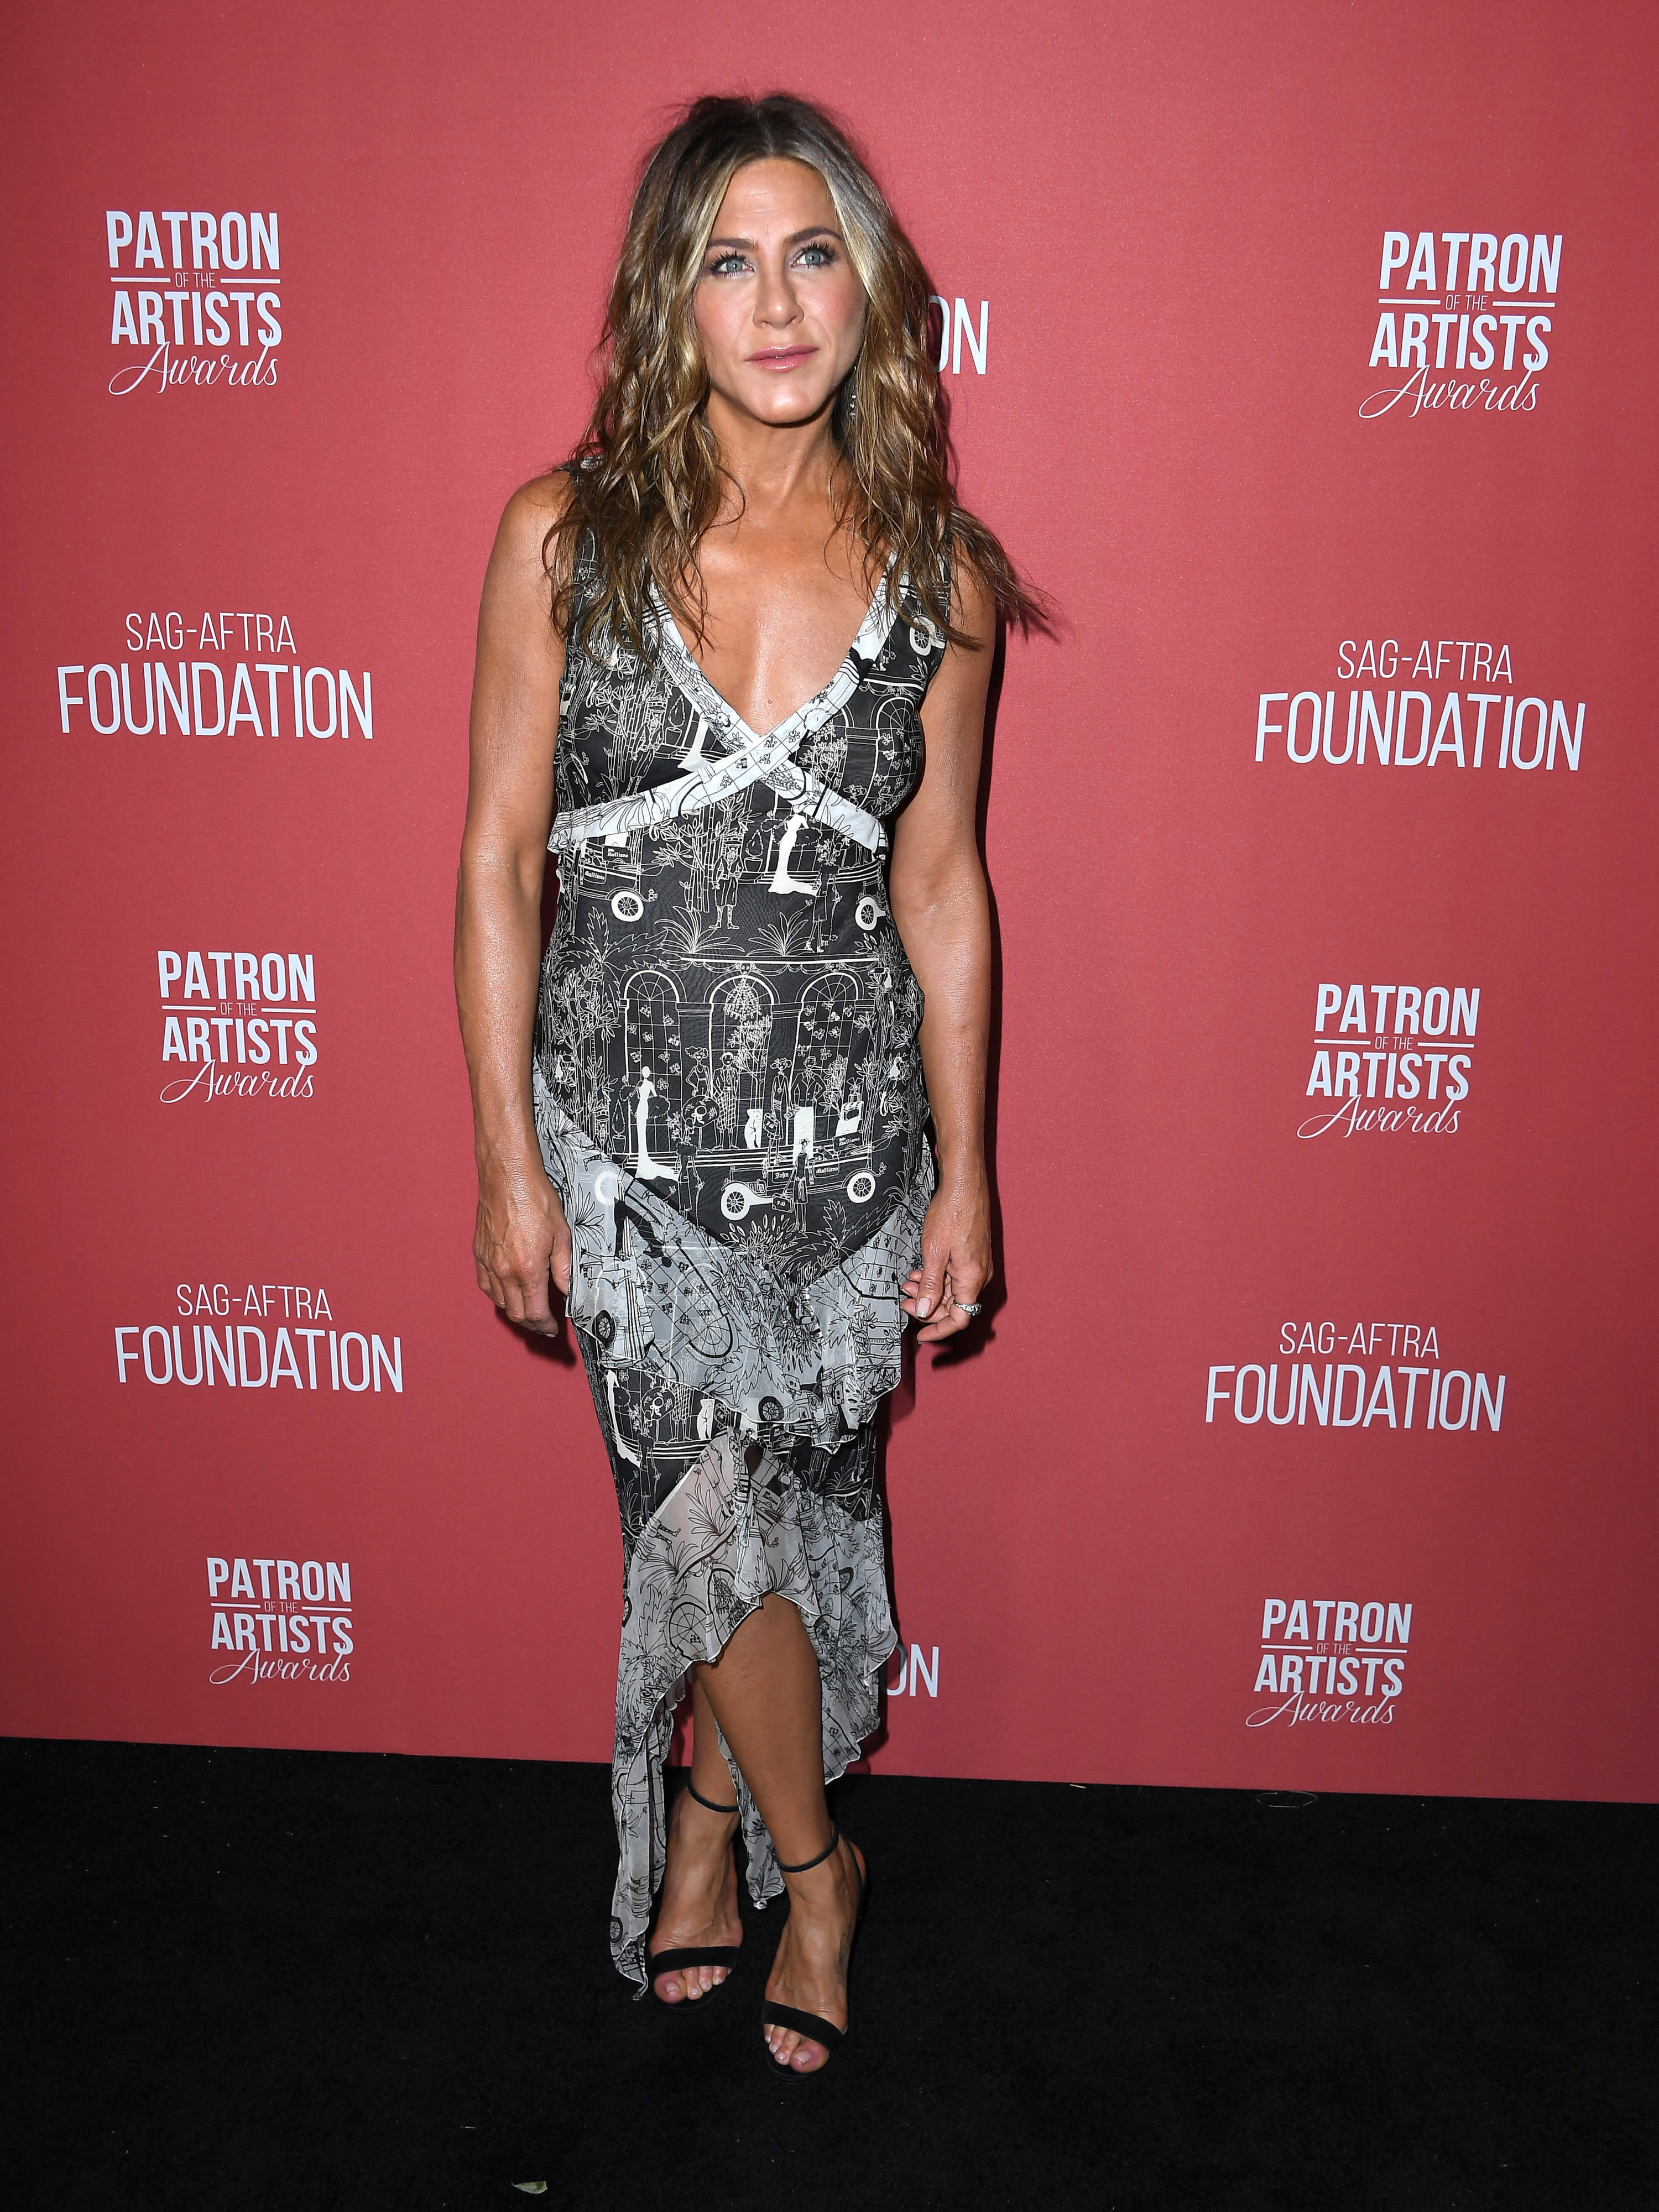 Jen wears a very busy patterned high-low v-neck dress and strappy heels.